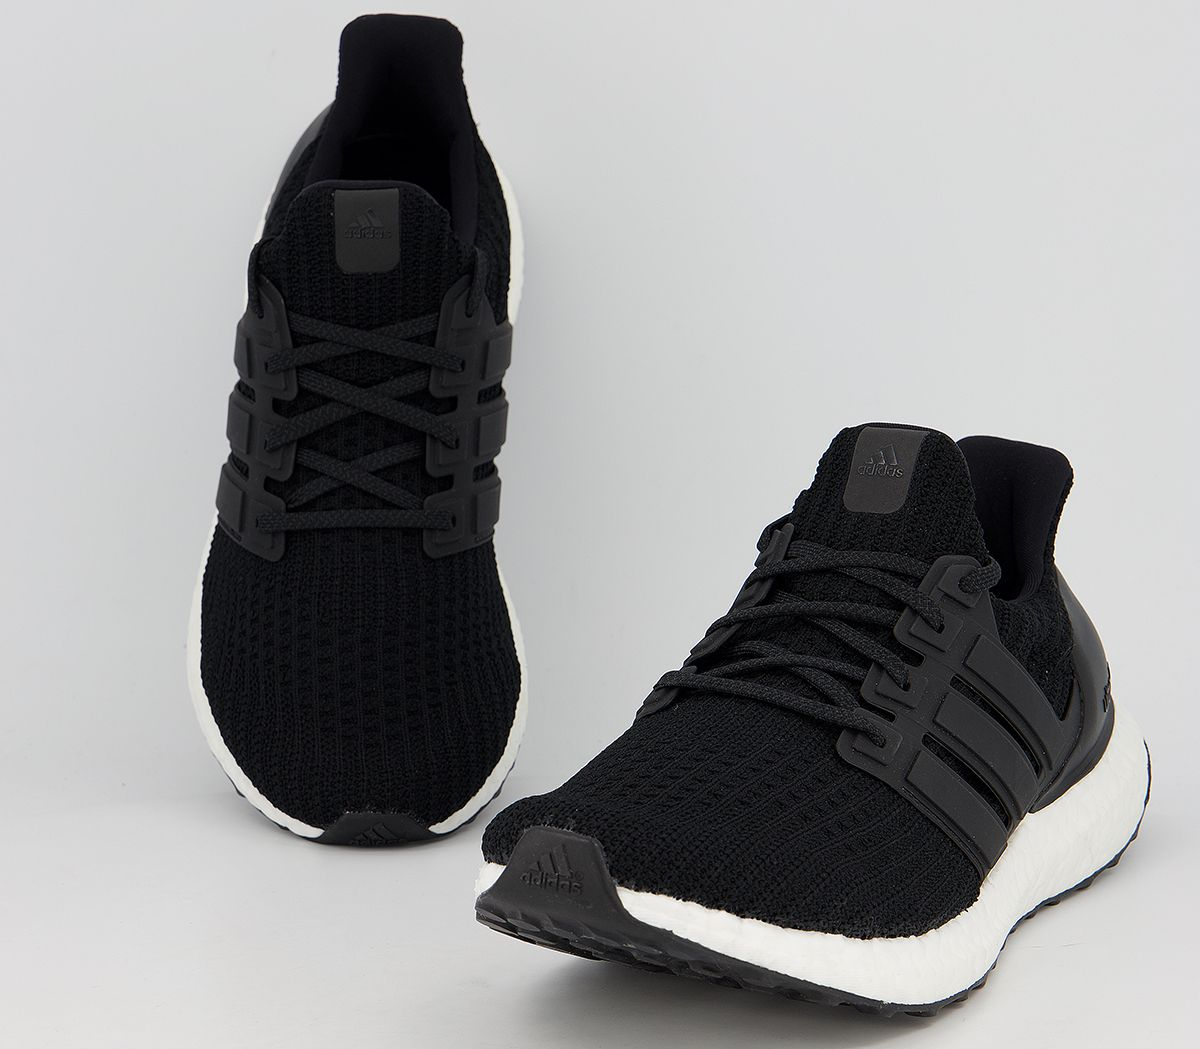 a1eaad8c4a488 adidas Ultraboost Ultra Boost Trainers Black White - Unisex Sports